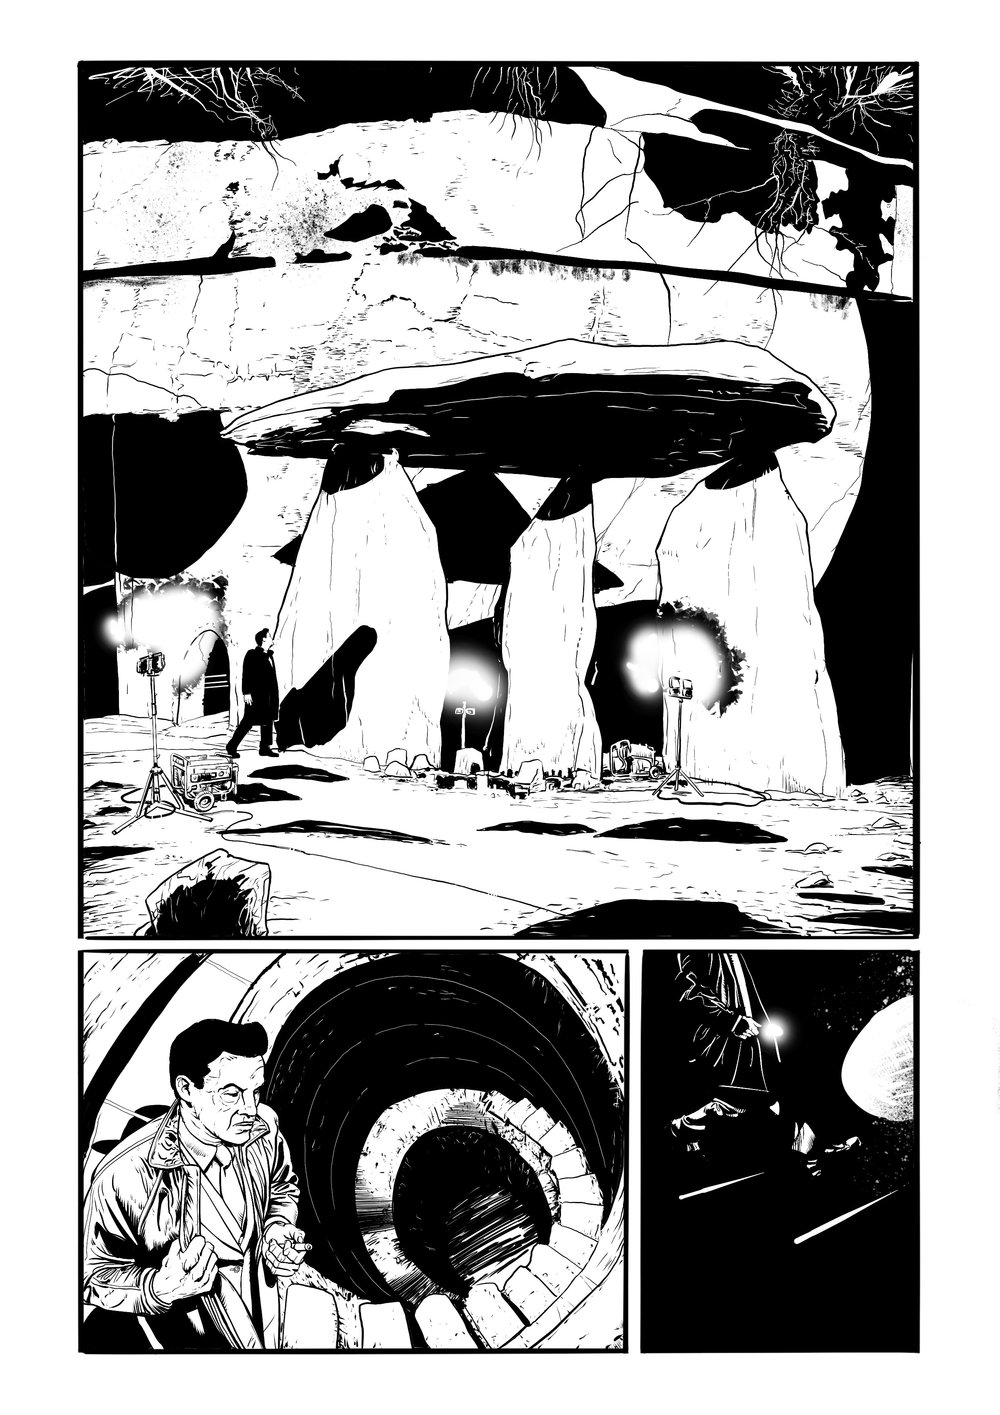 Above: interior page from Corsair available only on www.kickstarter.com